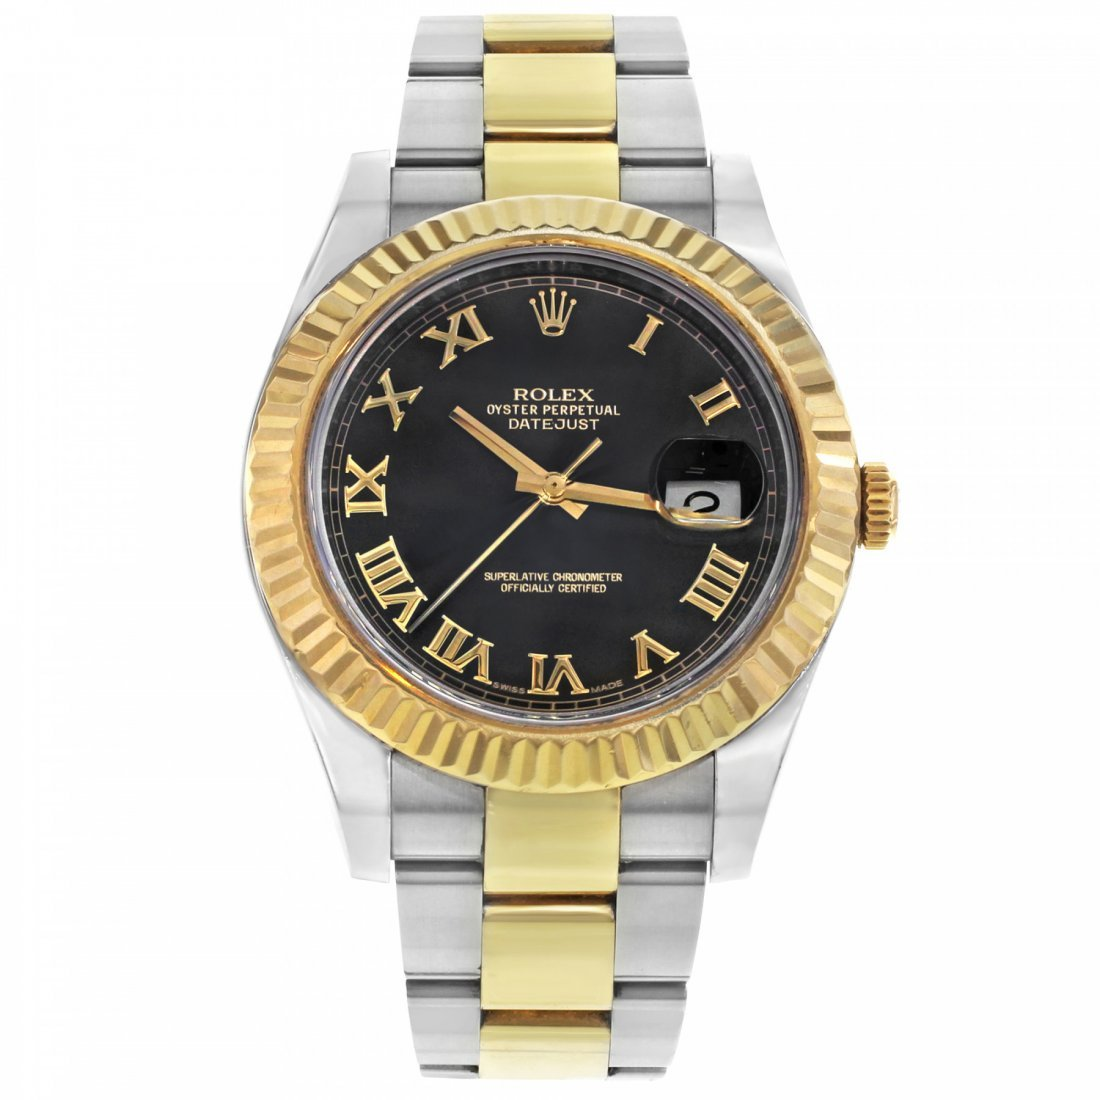 ROLEX DATEJUST BLACK ROMAN DIAL STEEL 18K GOLD WATCH